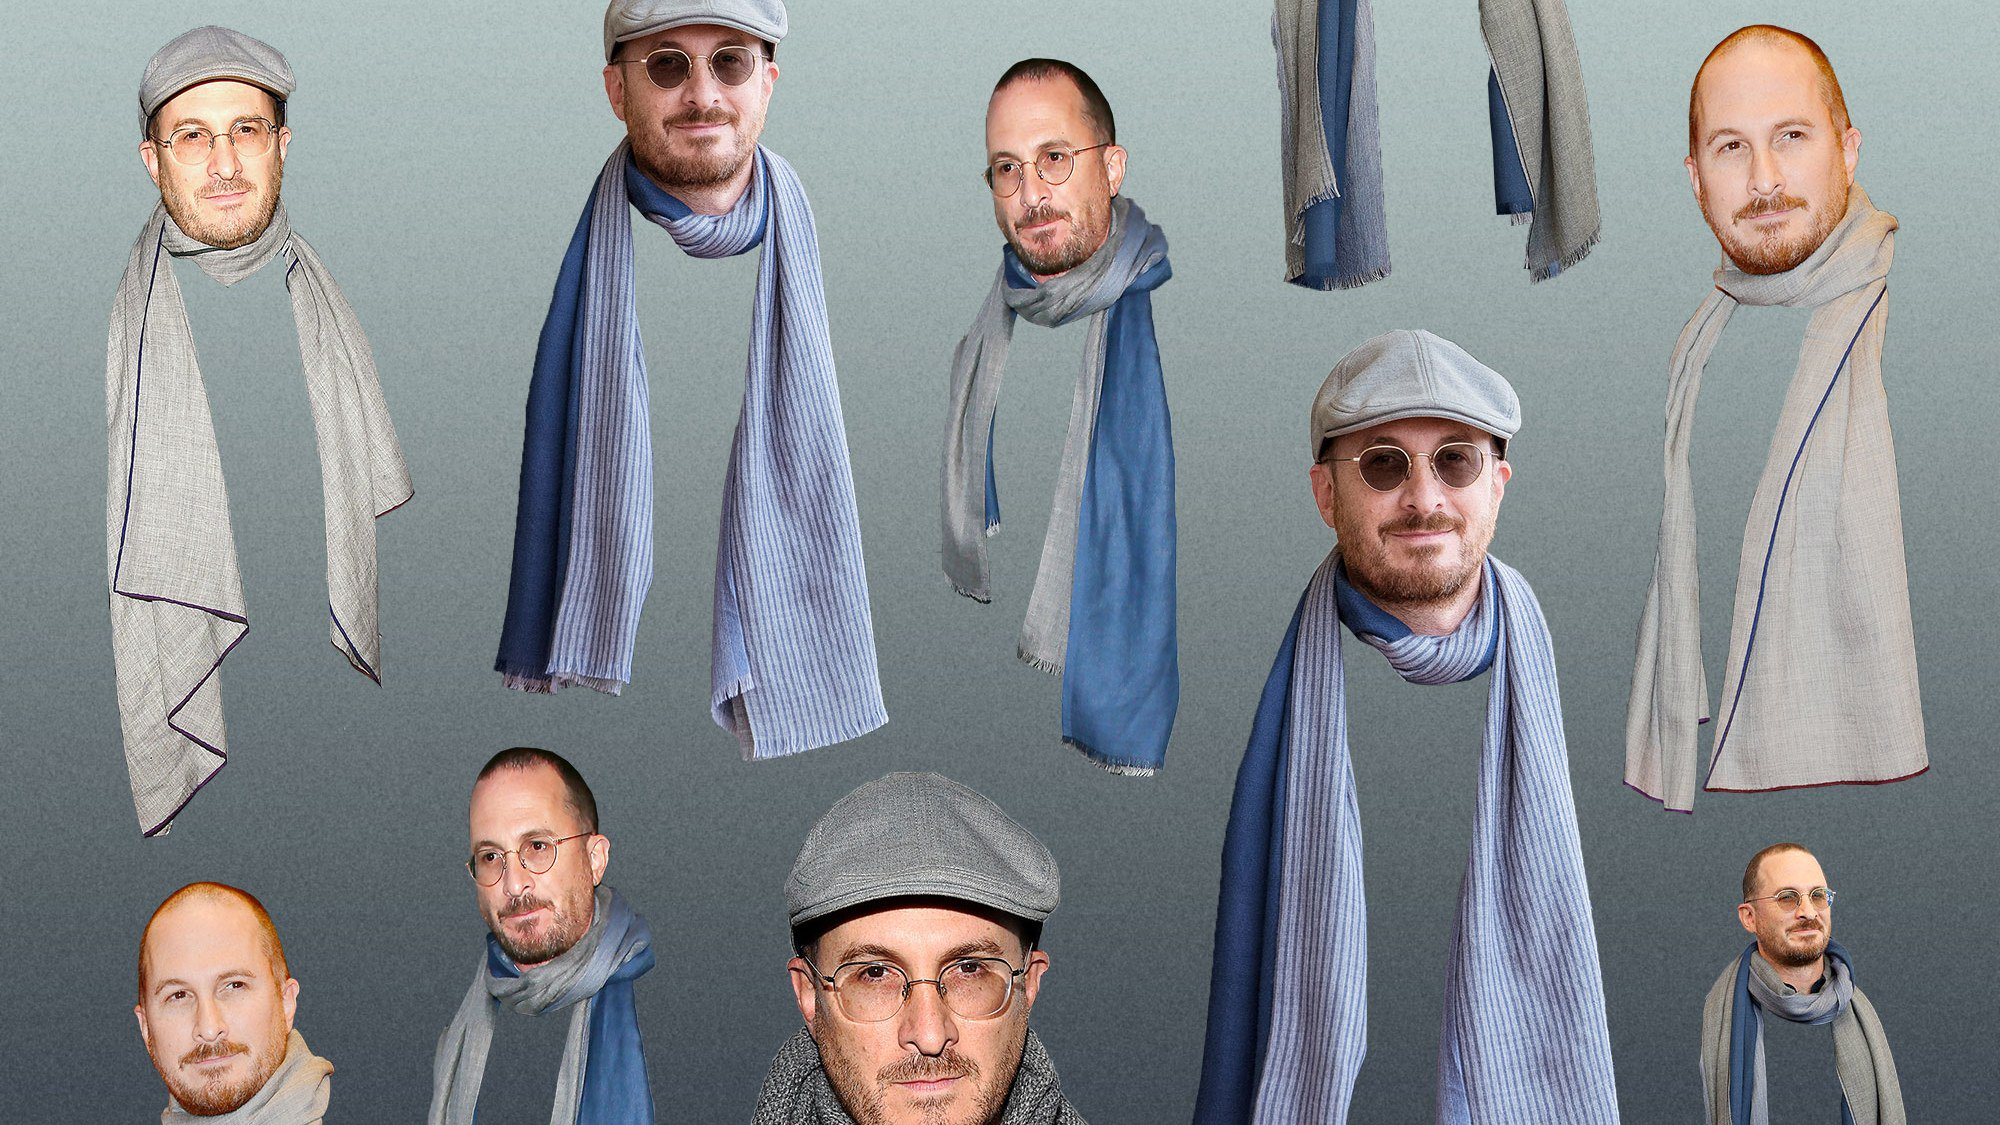 The only thing more unsettling than 'mother!' is Darren Aronofsky in all these scarves https://t.co/lEgTiCJcDJ https://t.co/b3sk3IdgRz